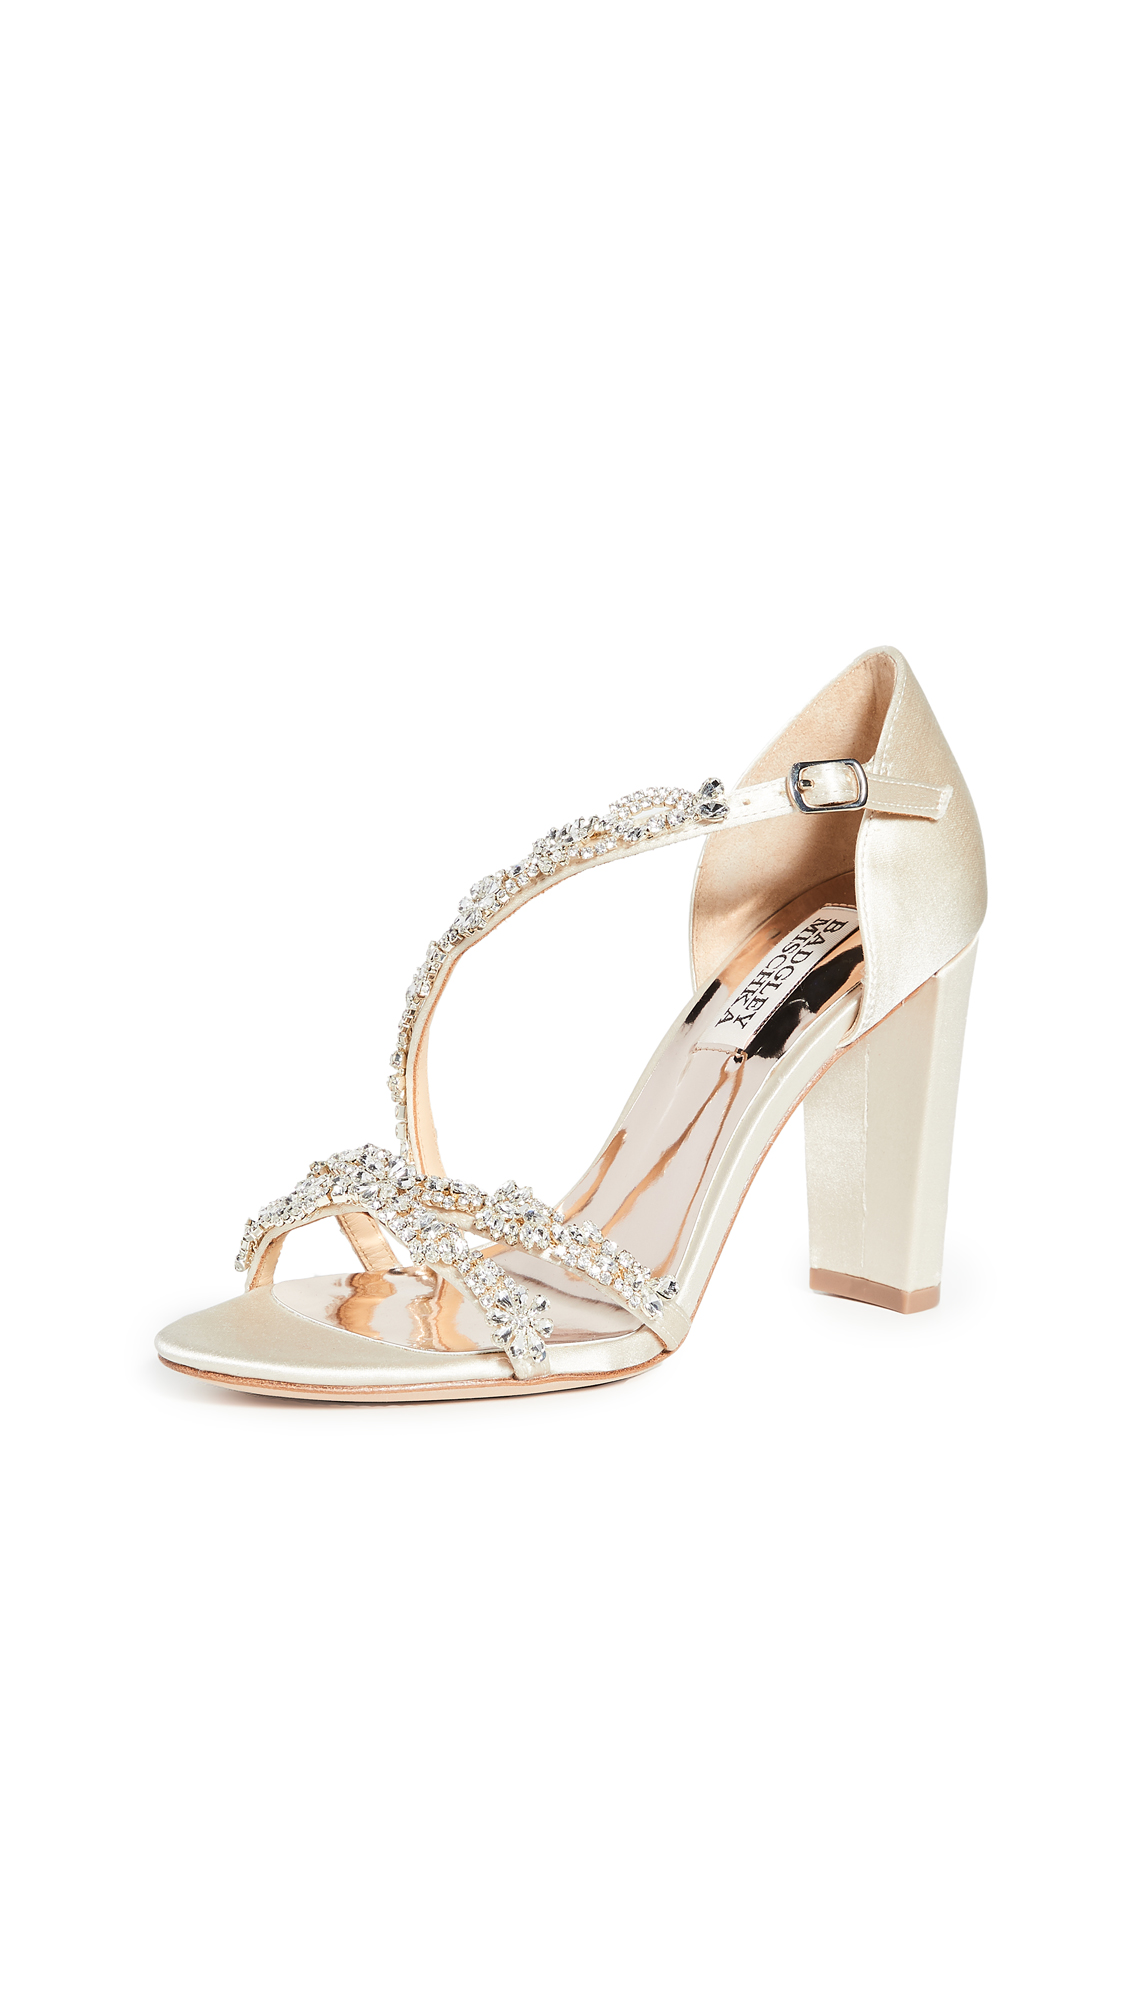 Badgley Mischka Omega Strappy Sandals - 70% Off Sale